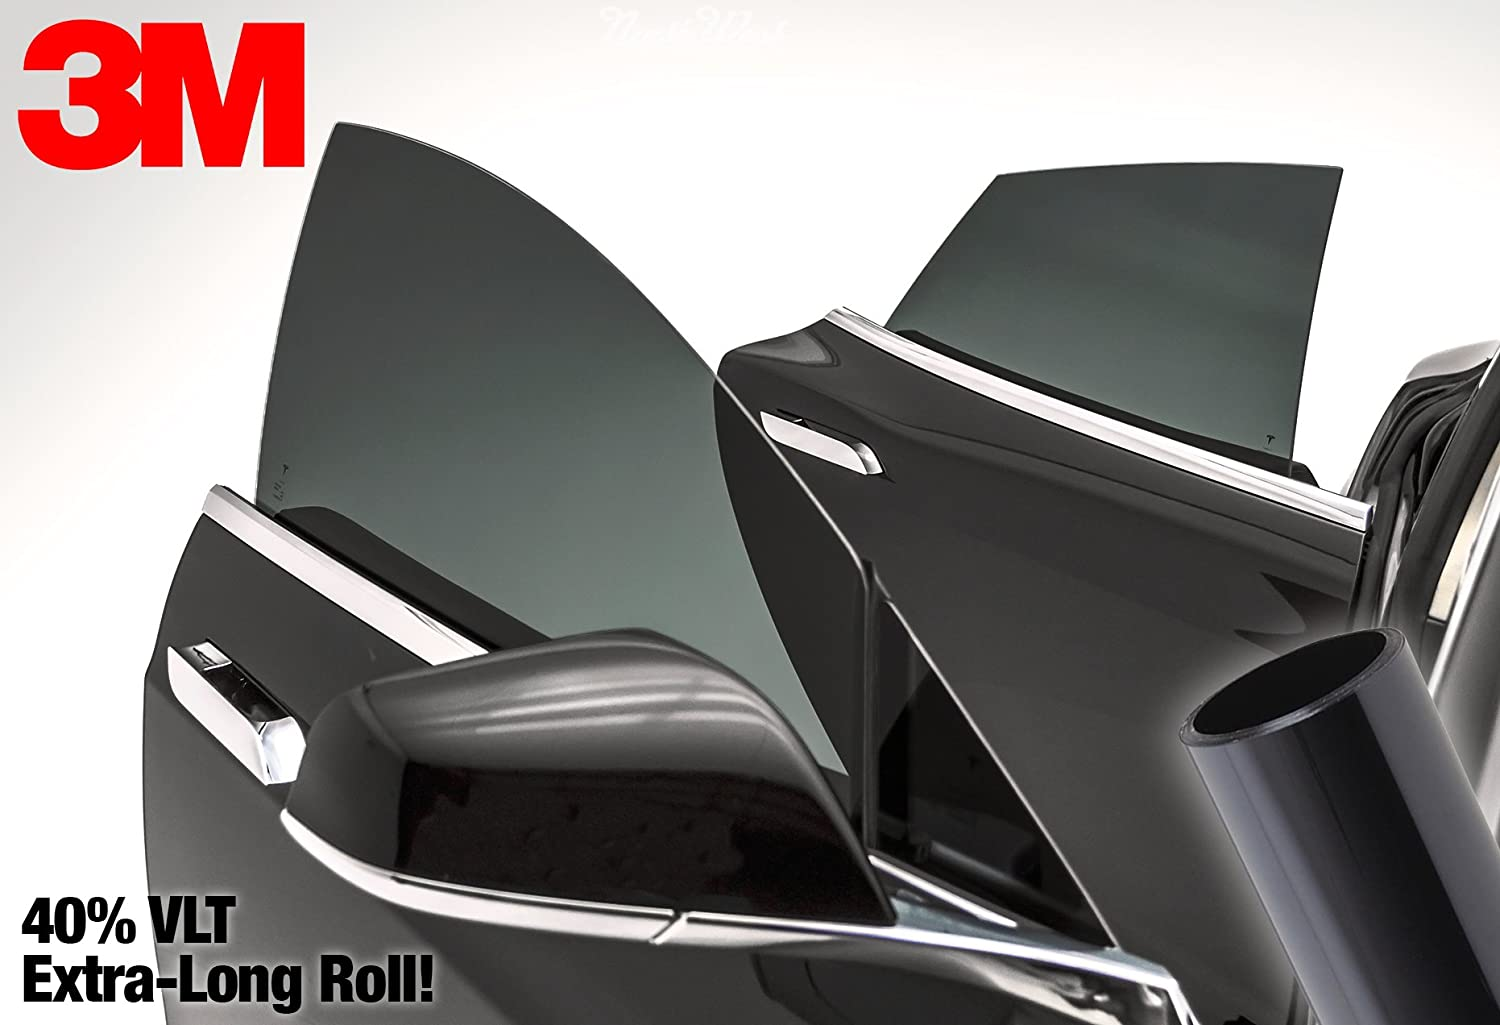 29 Inch x 48 Inch 2 Roll Pack 3M 40/% VLT Medium Dark Smoke Black Car Window Tint Vinyl Wrap Roll